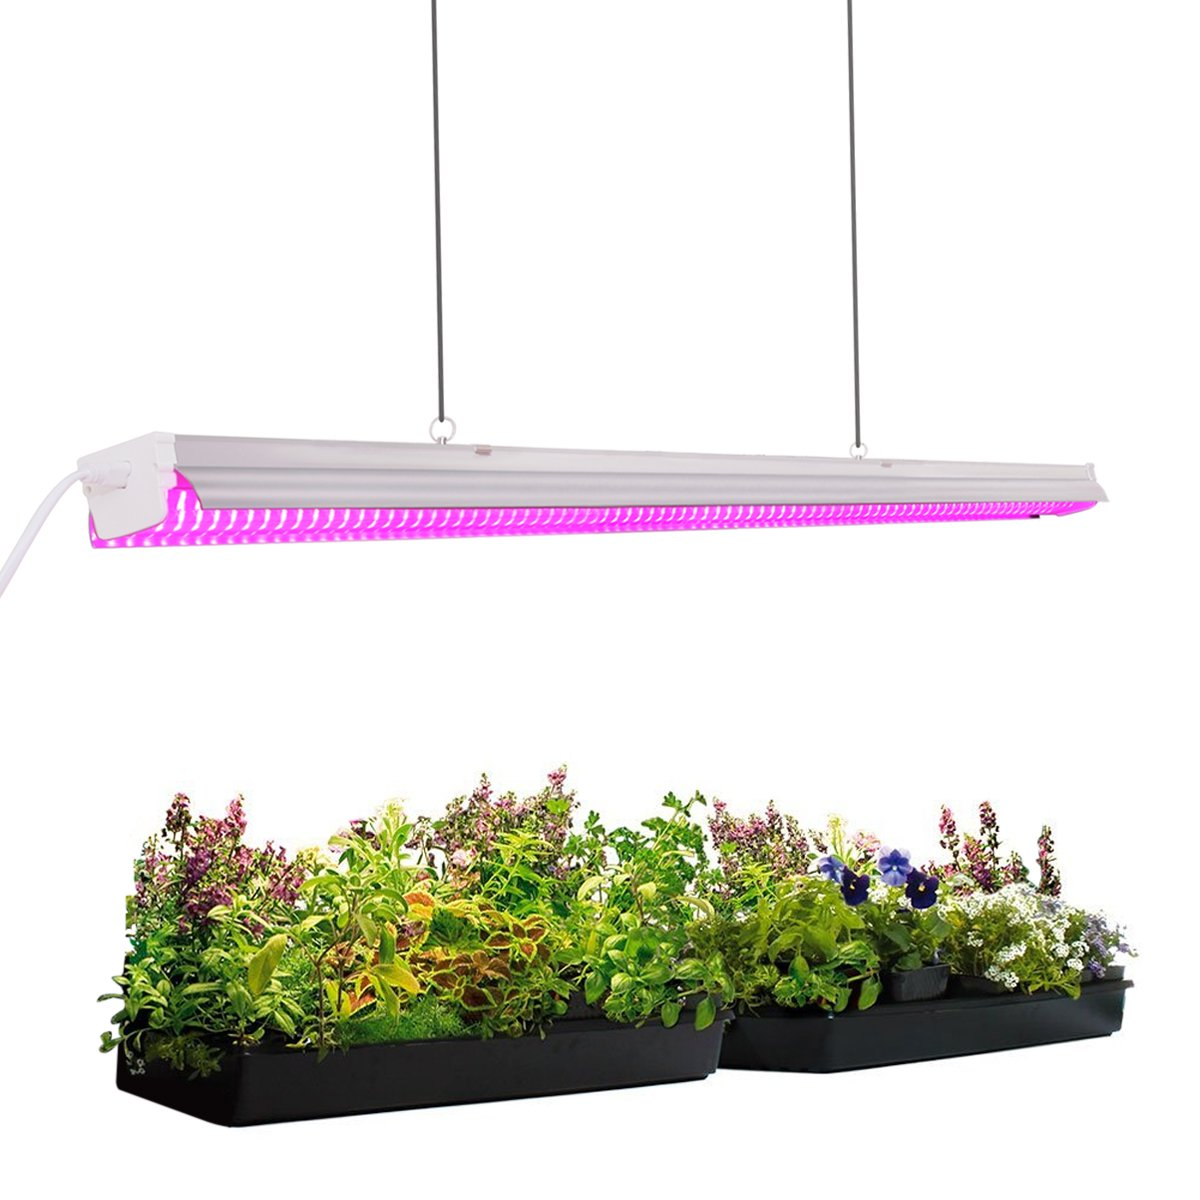 Byingo 4ft 64W Plant Growth Light - LED Integrated Lamp Fixture Plug and Play - Full Spectrum for Indoor Plants Flowers Growing